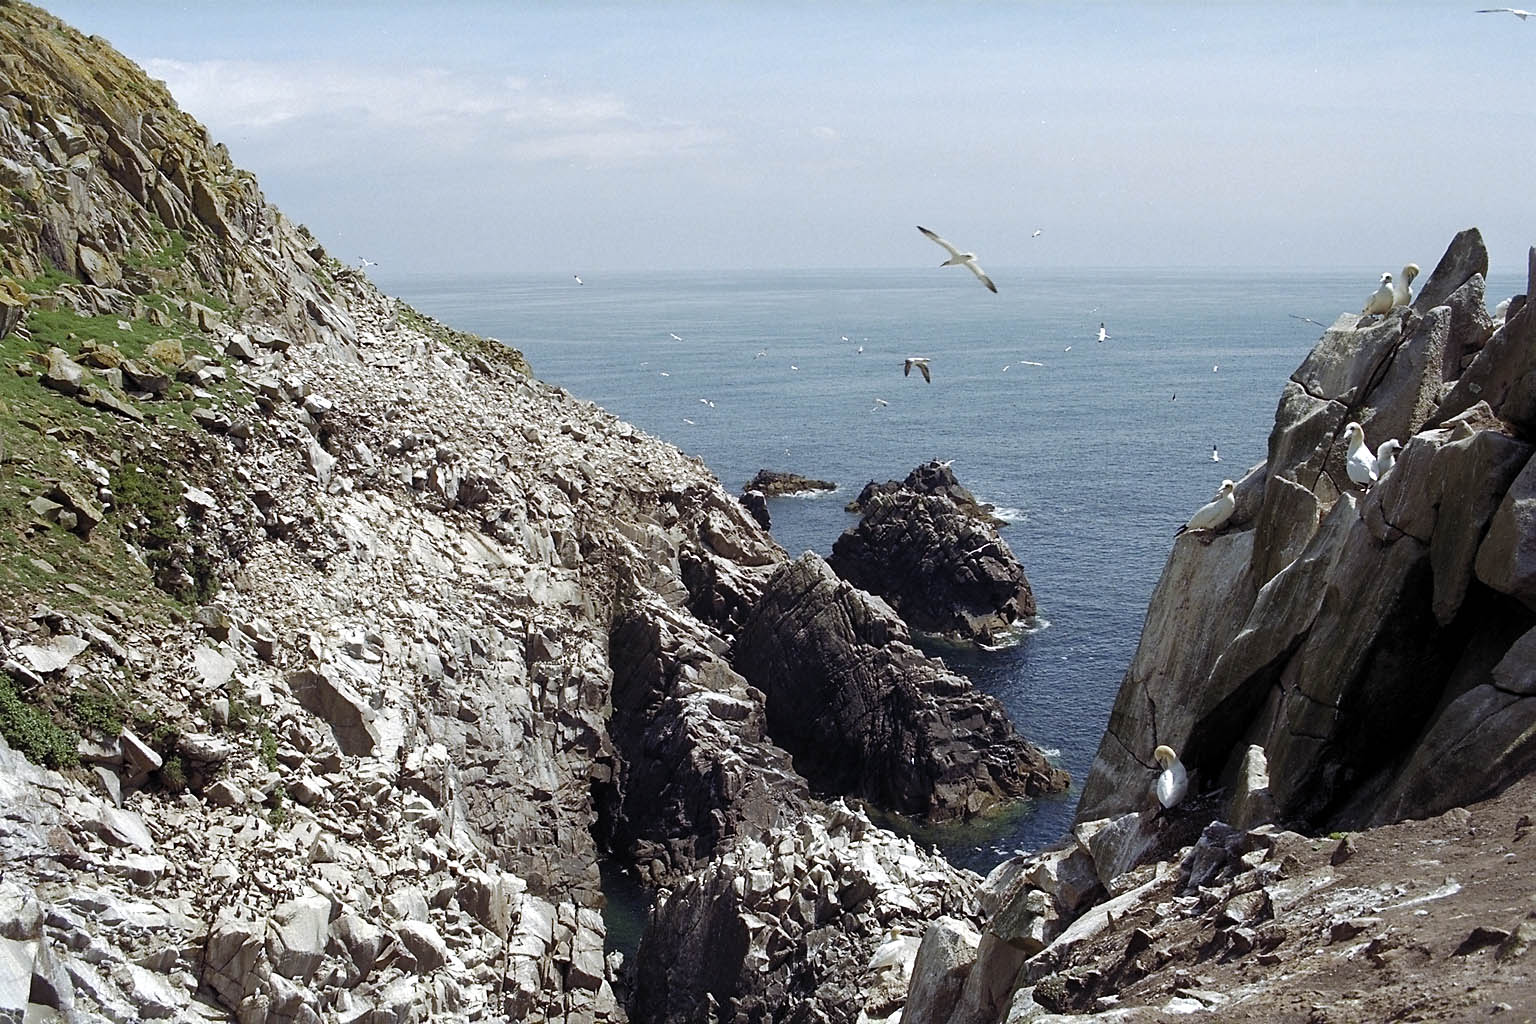 Seeing the Saltee Islands is an awesome thing to do in Ireland